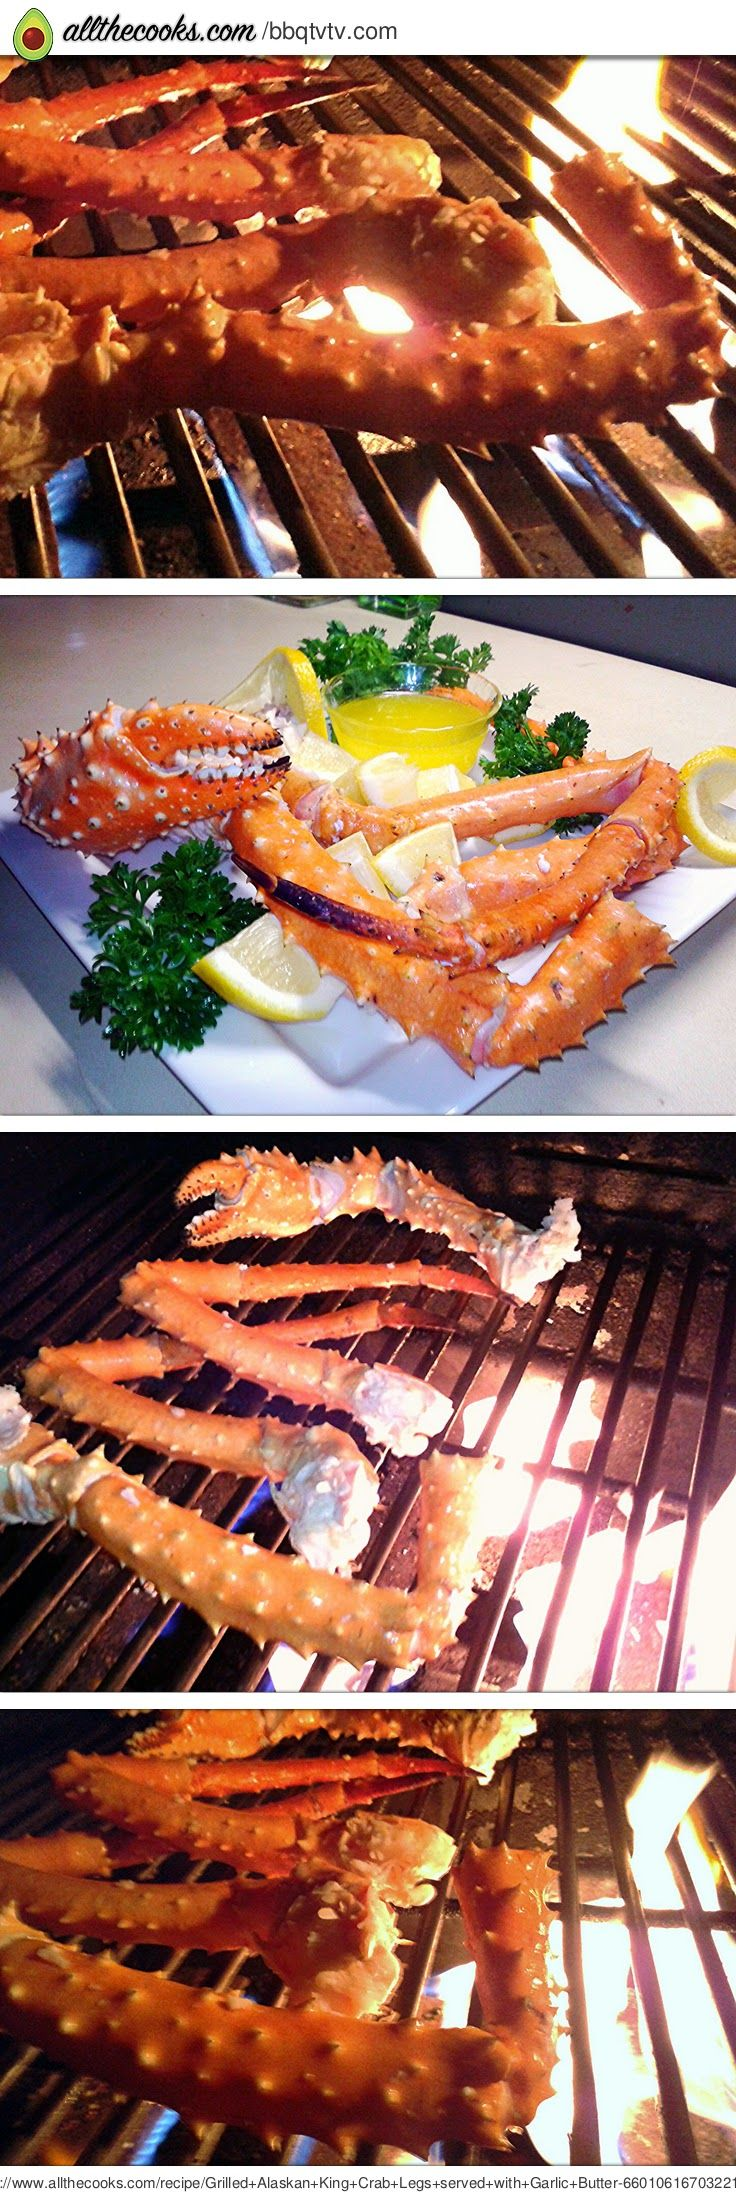 """Grilled Alaskan King Crab Legs served with Garlic Butter.! 5.00 stars, 6 reviews. """"A fast, easy and elegant dinner for your next outdoor party."""" @allthecooks #recipe"""